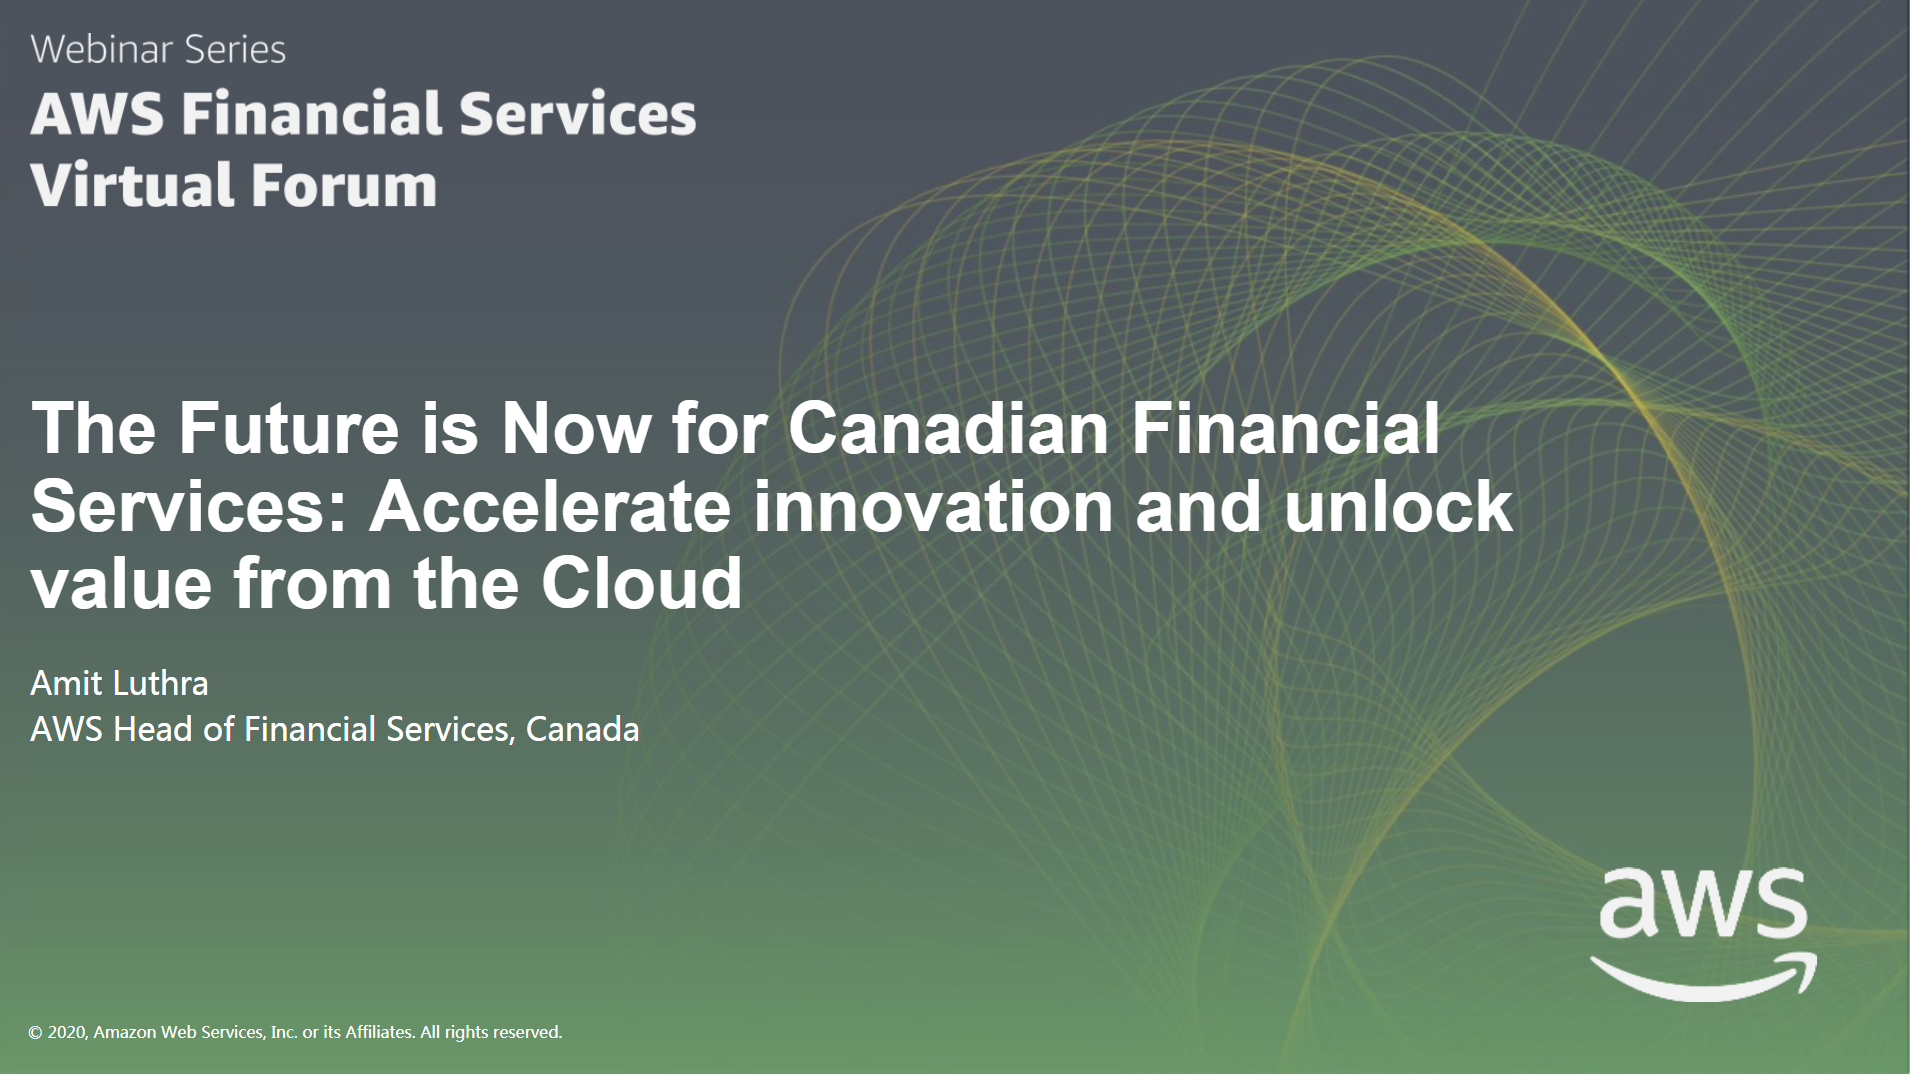 The Future is Now for Canadian Financial Services